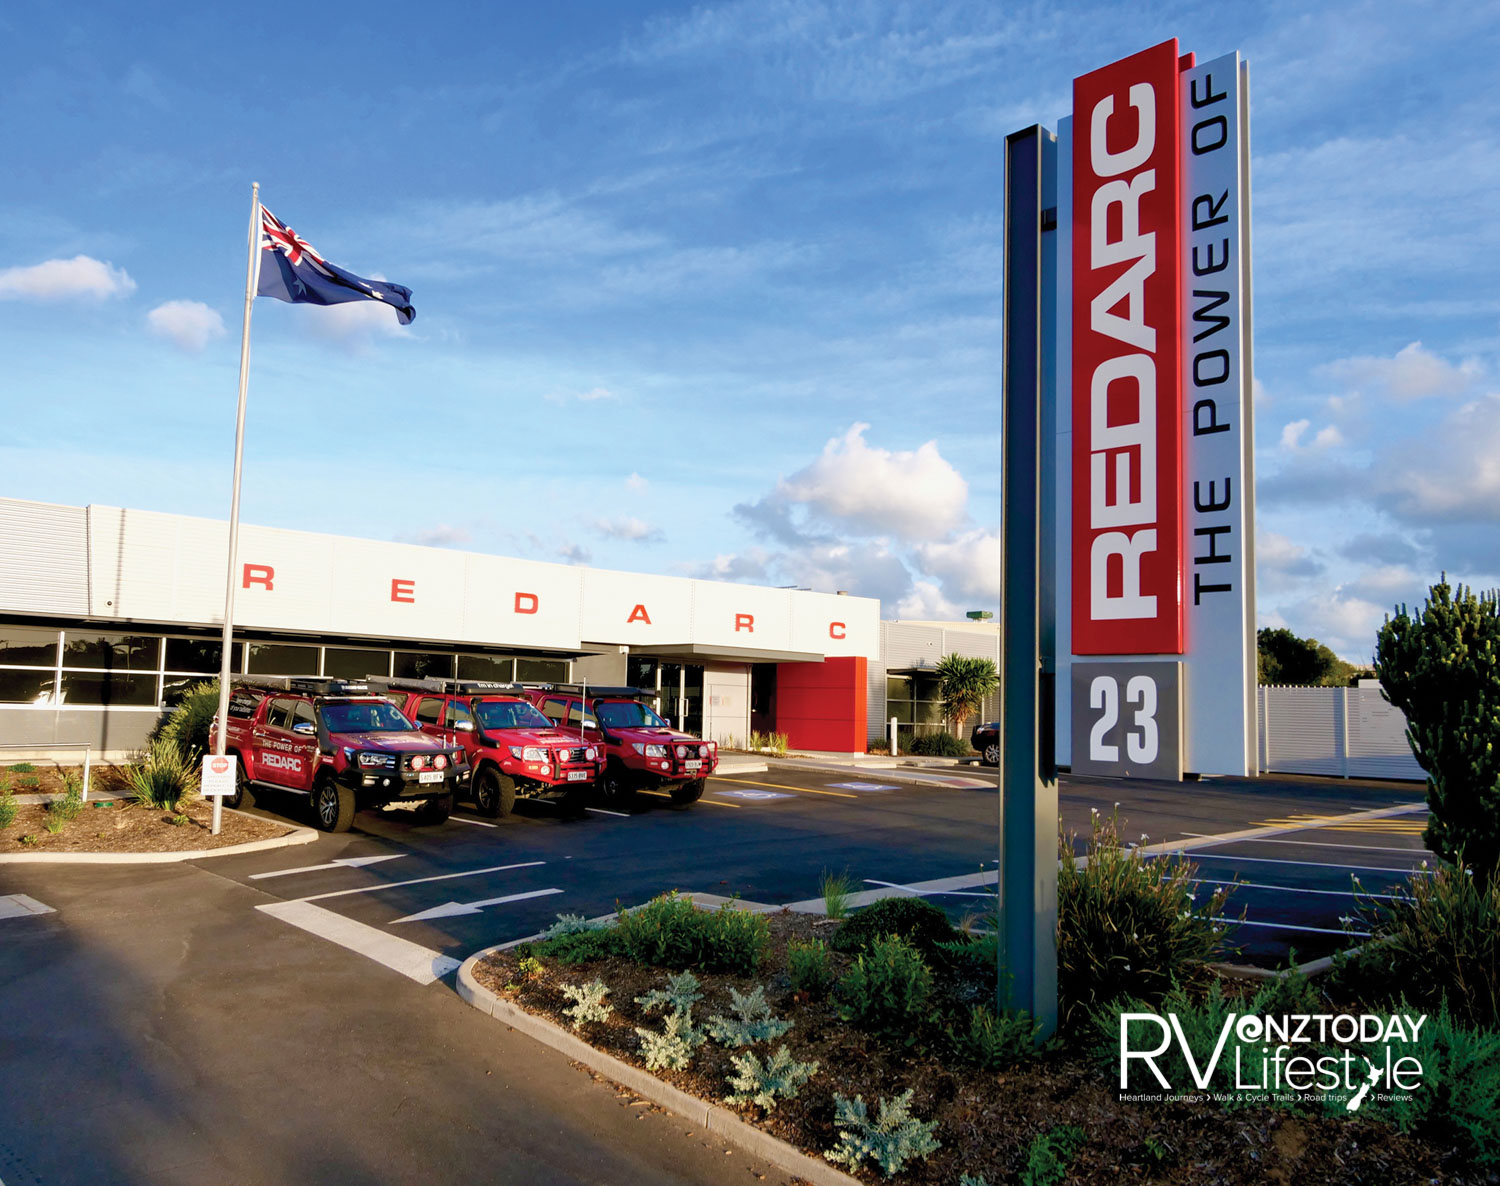 REDARC Plant is based in Adelaide